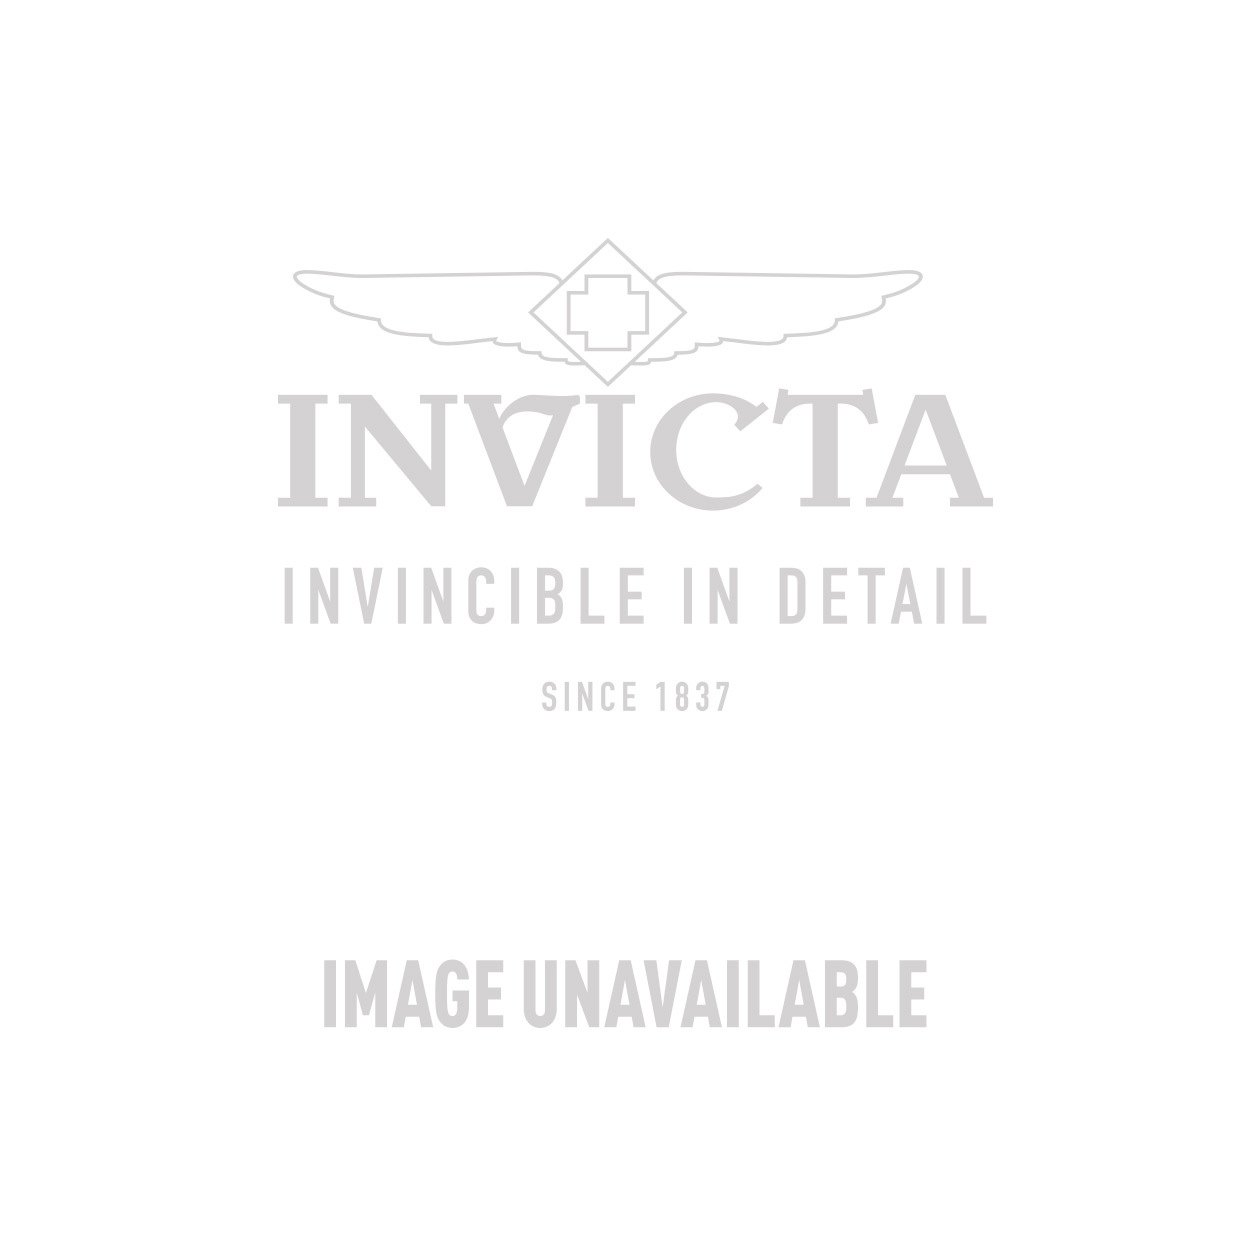 Invicta Lupah Swiss Movement Quartz Watch - Stainless Steel case with Black tone Leather band - Model 13690